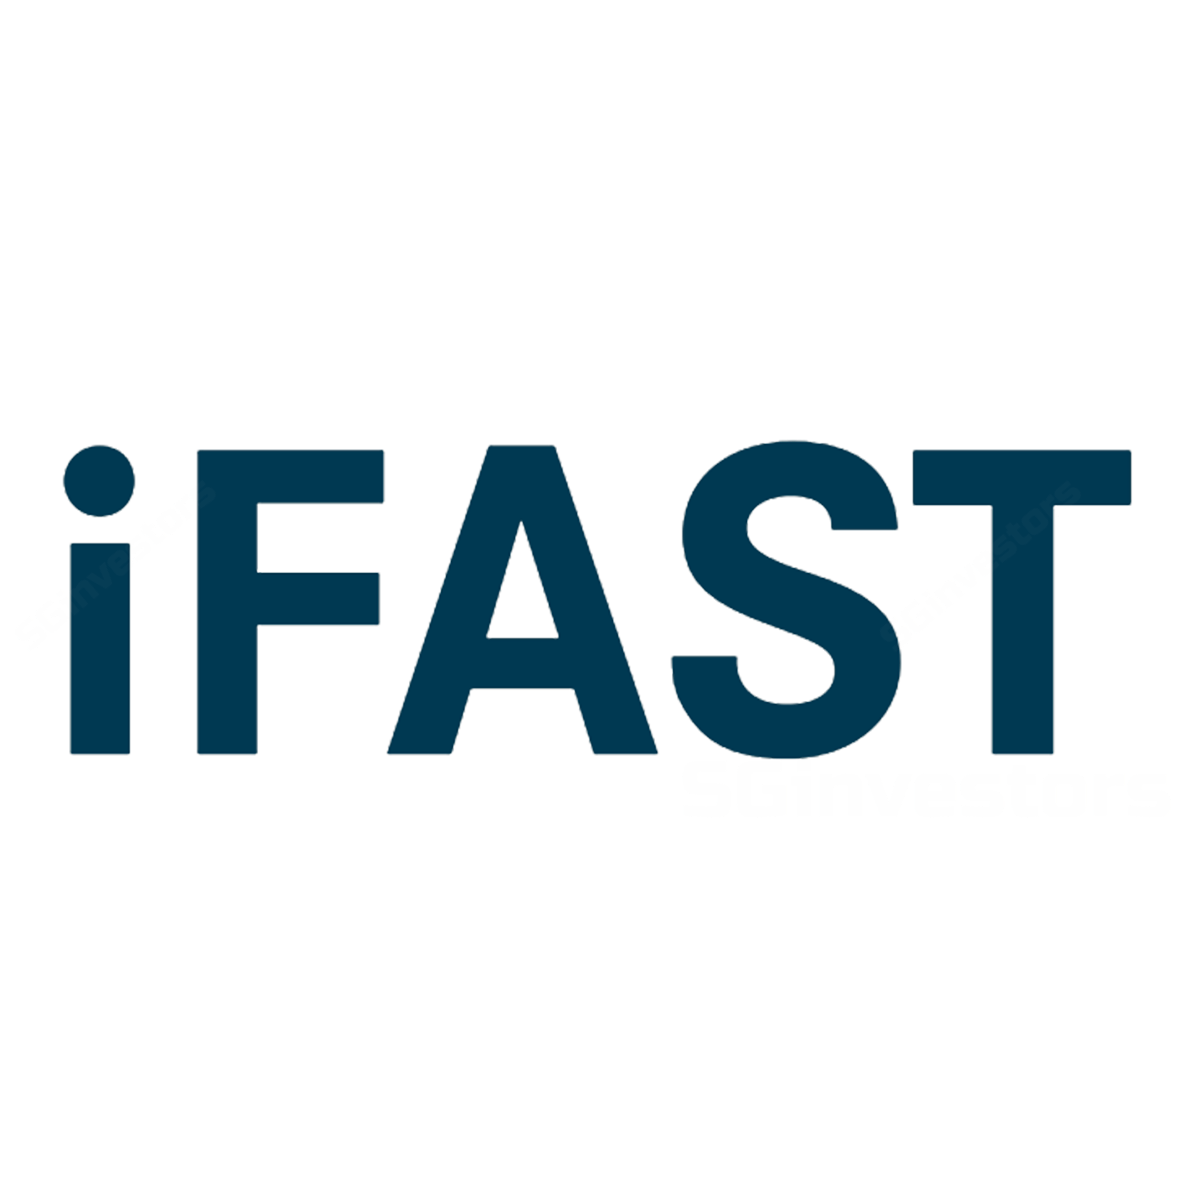 IFAST Corporation - RHB Invest 2017-07-31: Momentum On Track But Valuations Are Now Rich